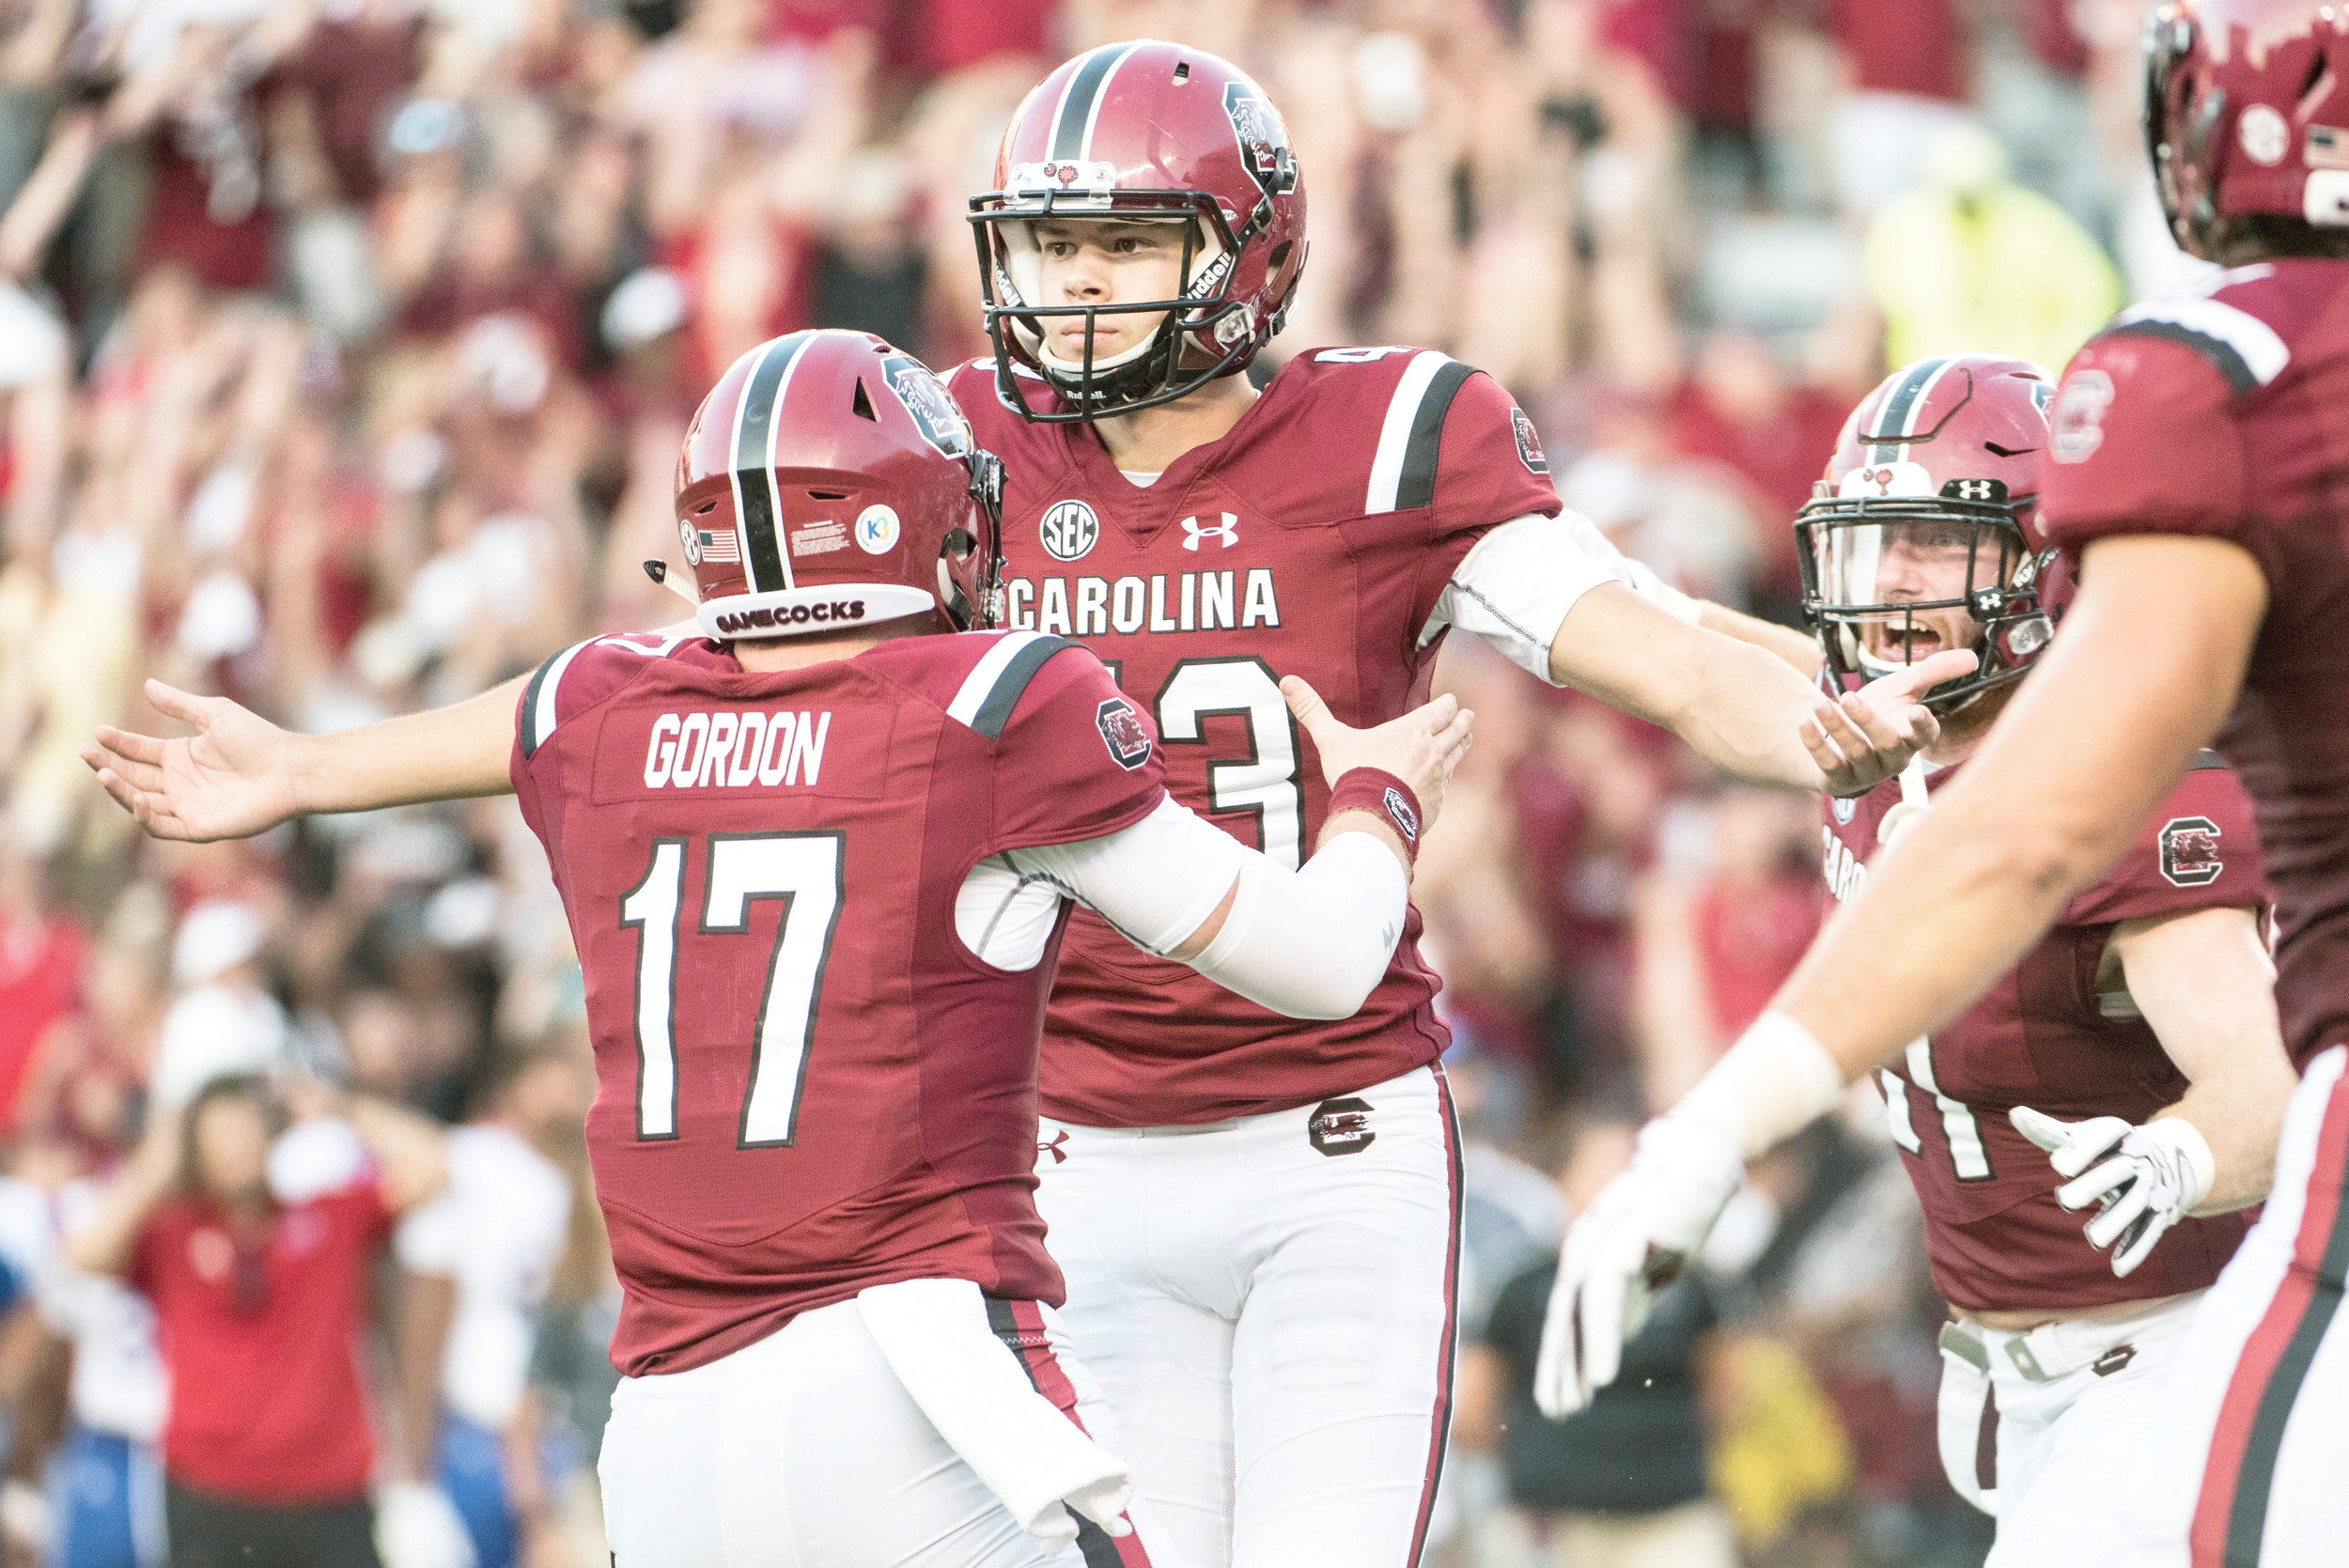 South Carolina kicker Parker White back celebrates a game-winning field goal against Louisiana Tech with teammate Danny Gordon during the Gamecocks 17-16 victory on Saturday at Williams Brice Stadium in Columbia